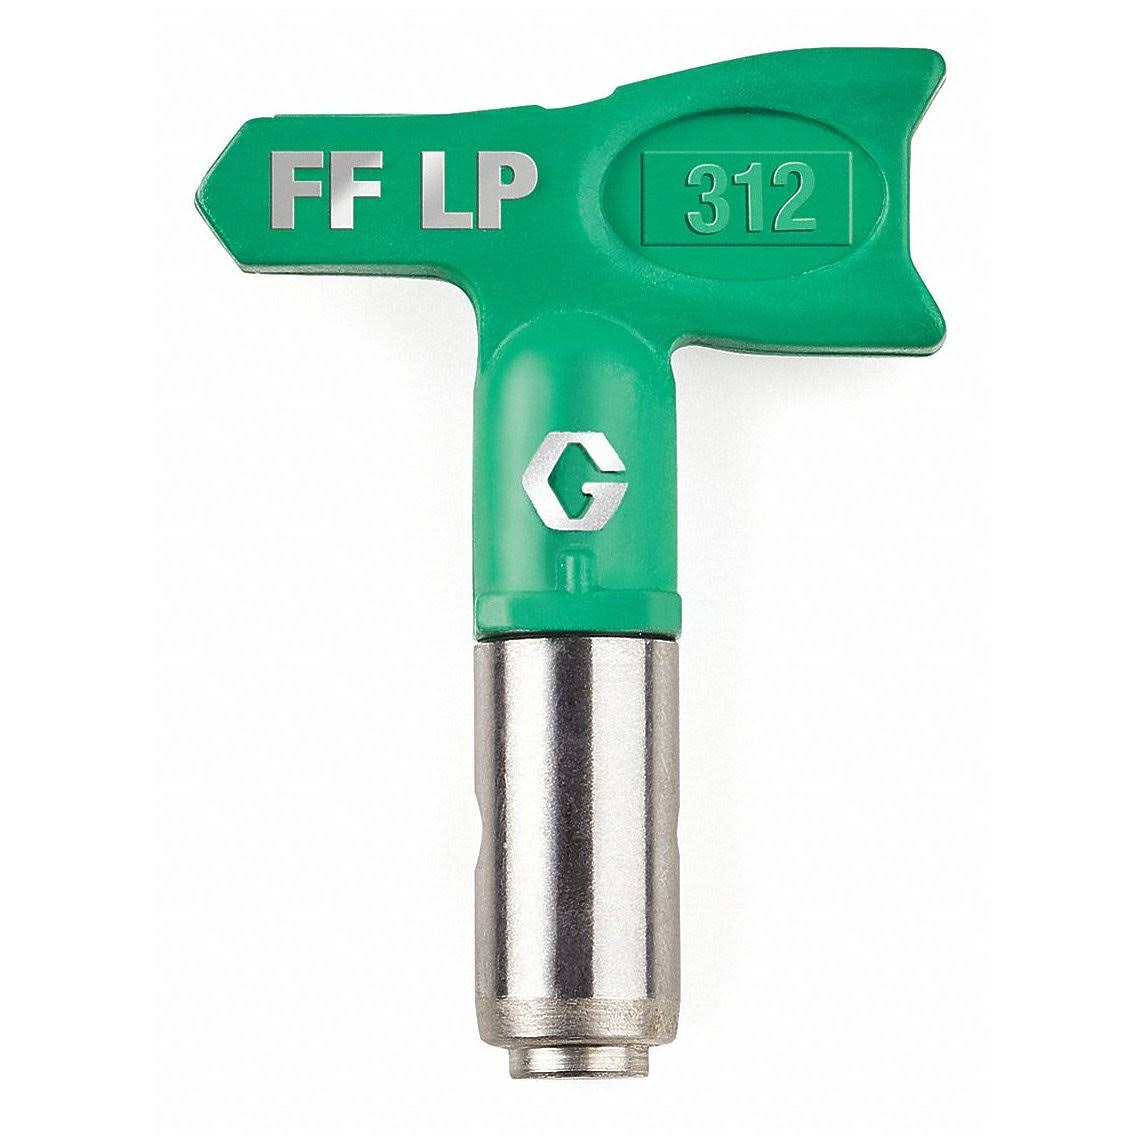 "Graco FFLP312 Airless Spray Gun Tip,0.012"" Tip Size"